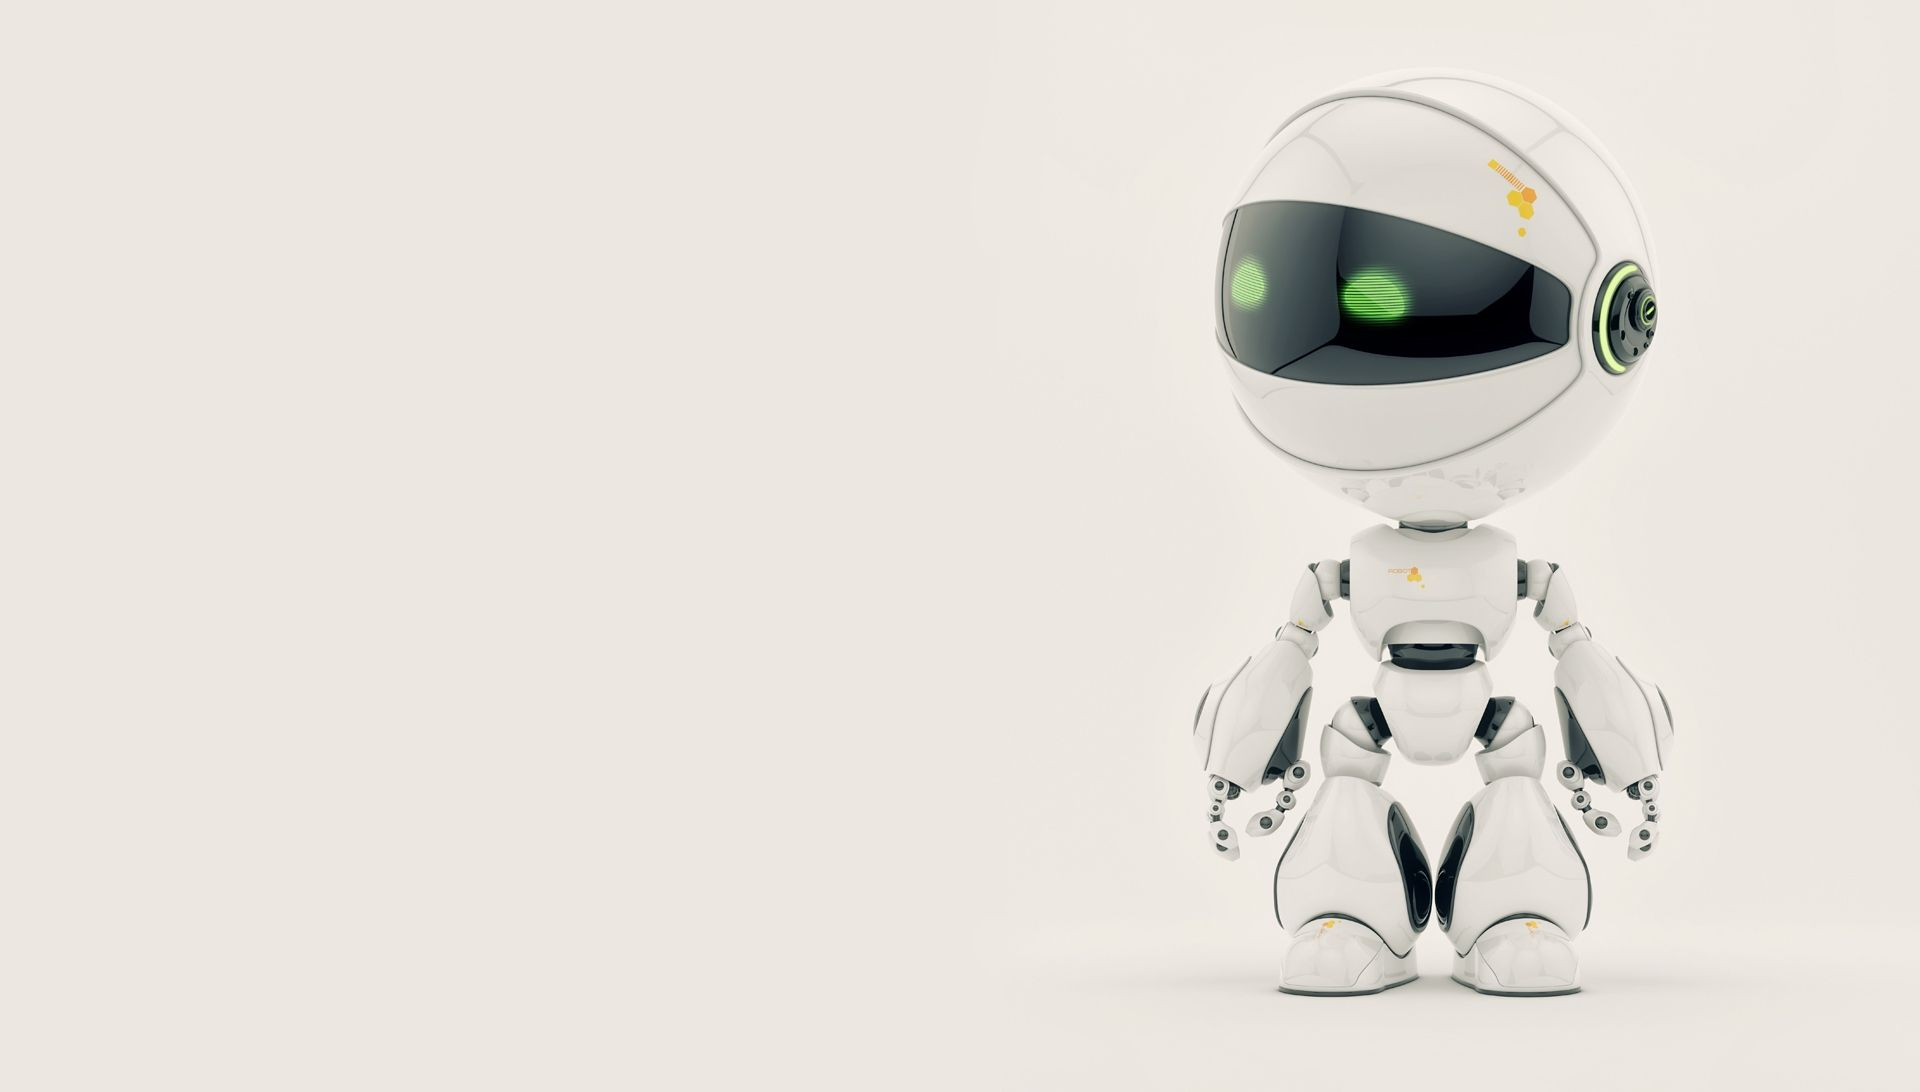 HD Robot Backgrounds wallpaperwiki Cute Robot Background PIC 1920x1092